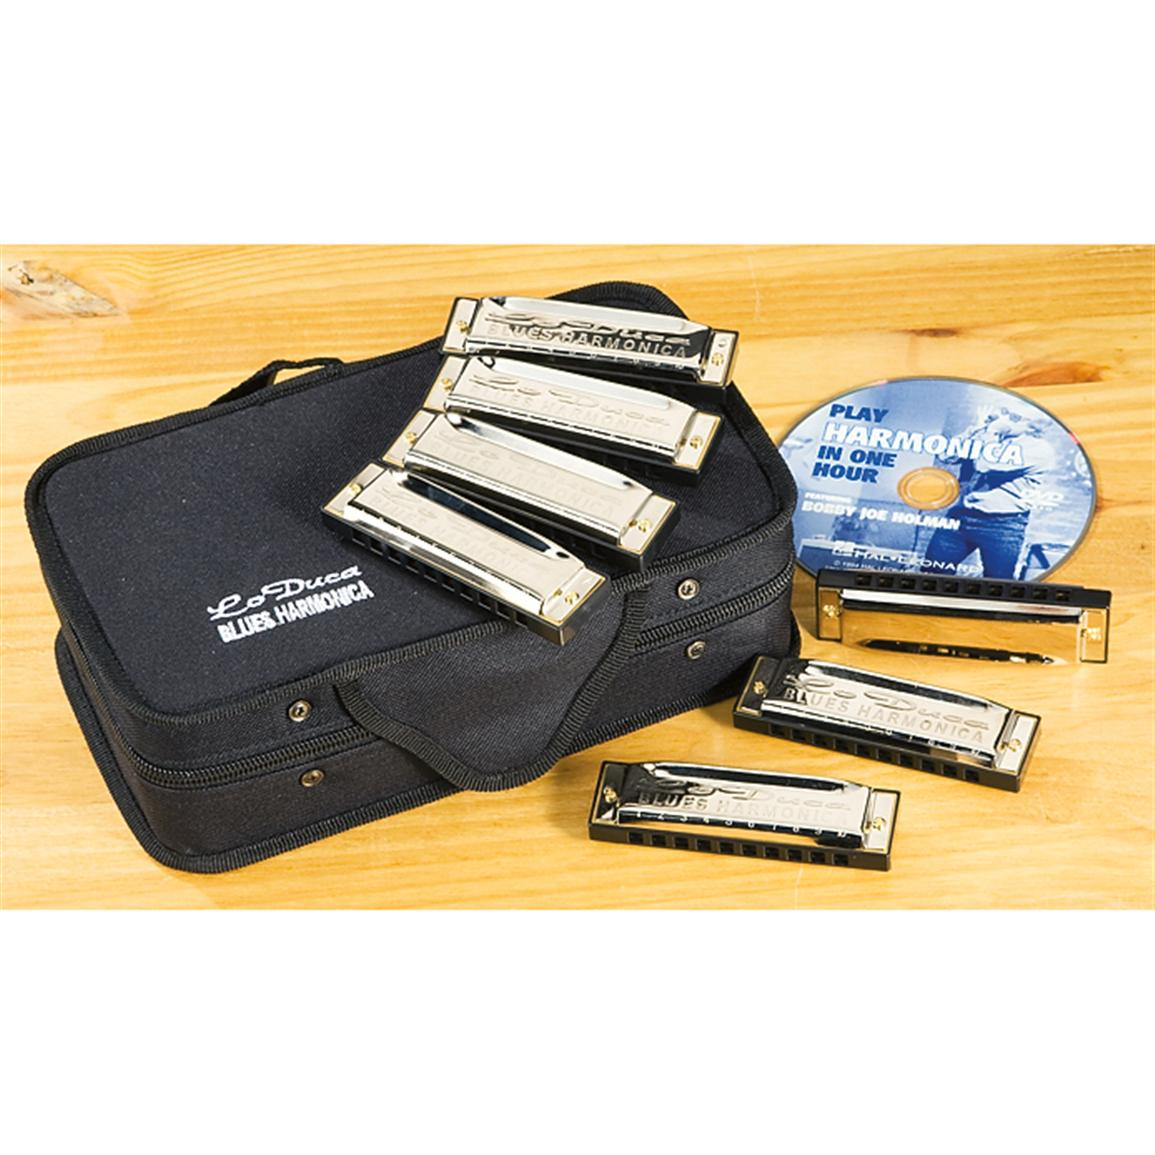 LoDuca® 7-Pc. Harmonica Set with DVD